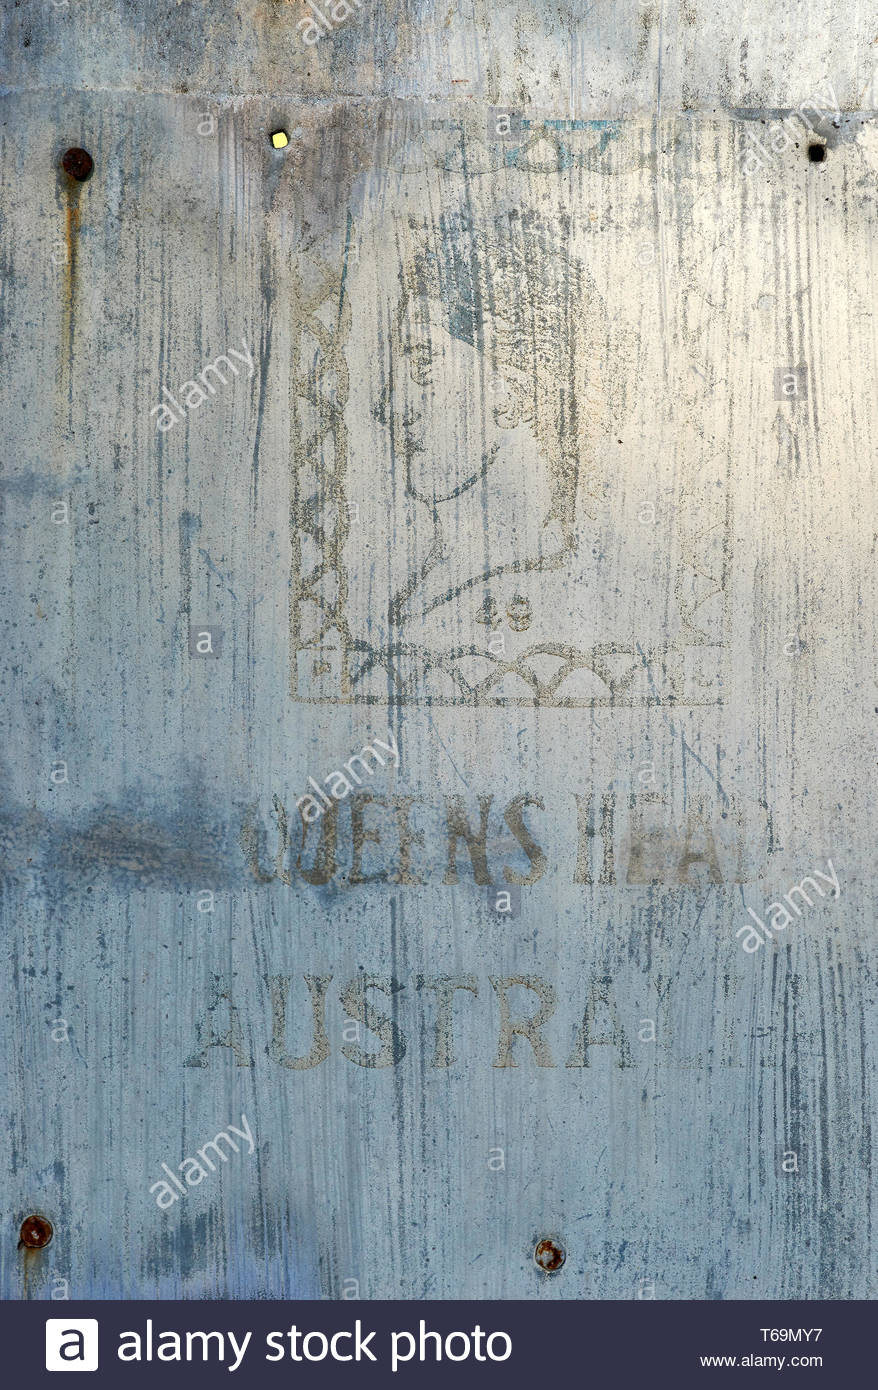 The 'Queens Head Australia' logo on an old flat sheet of galvanized iron - stamped for 1949 - popular metal cladding used in Australia last century. - Stock Image